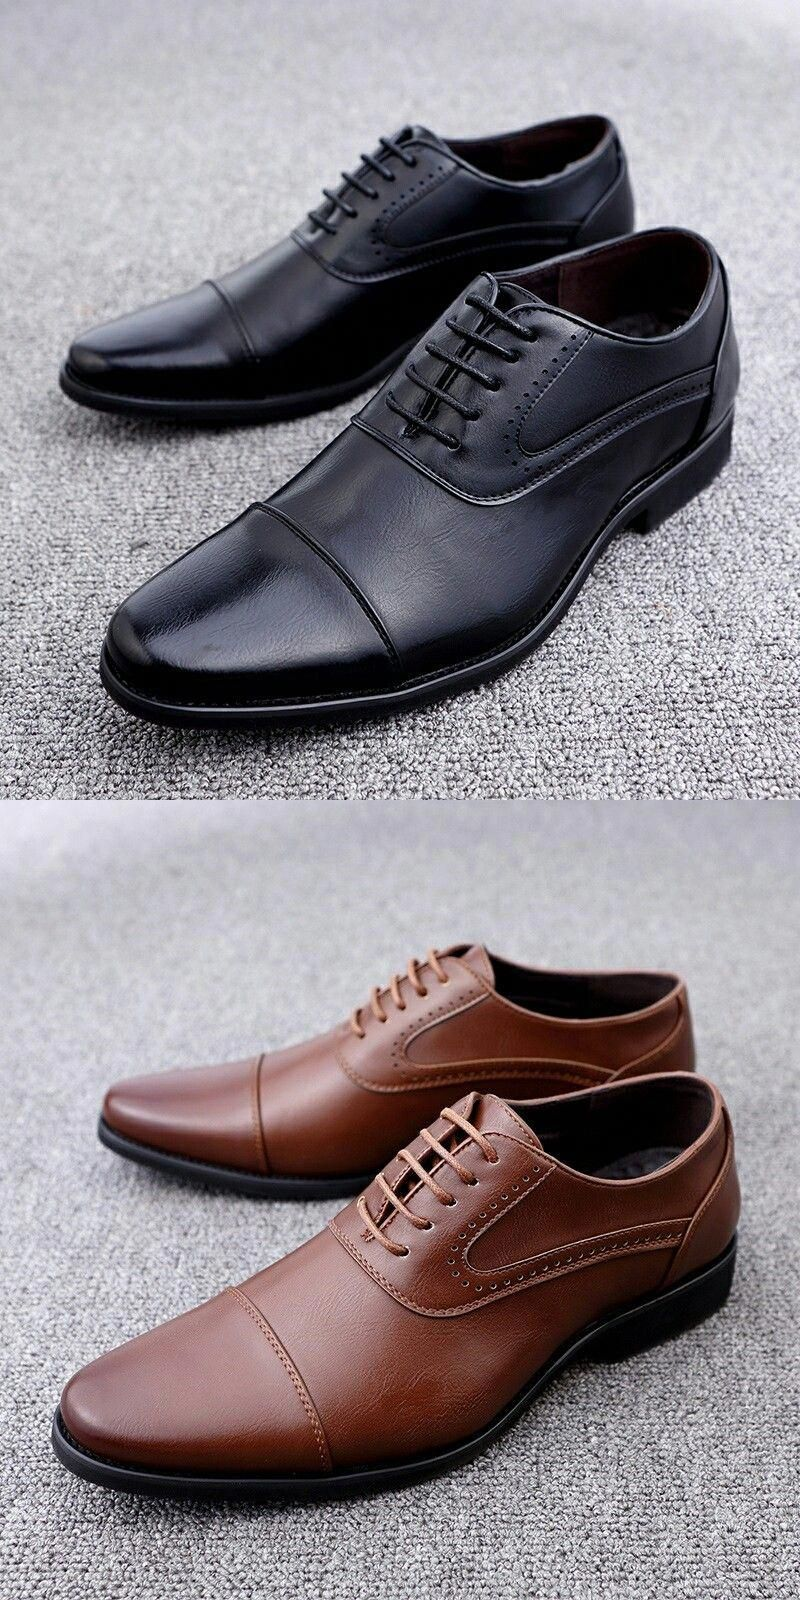 Mens Leather Lined Smart Wedding Shoes Formal Office Casual Party Dress Shoes